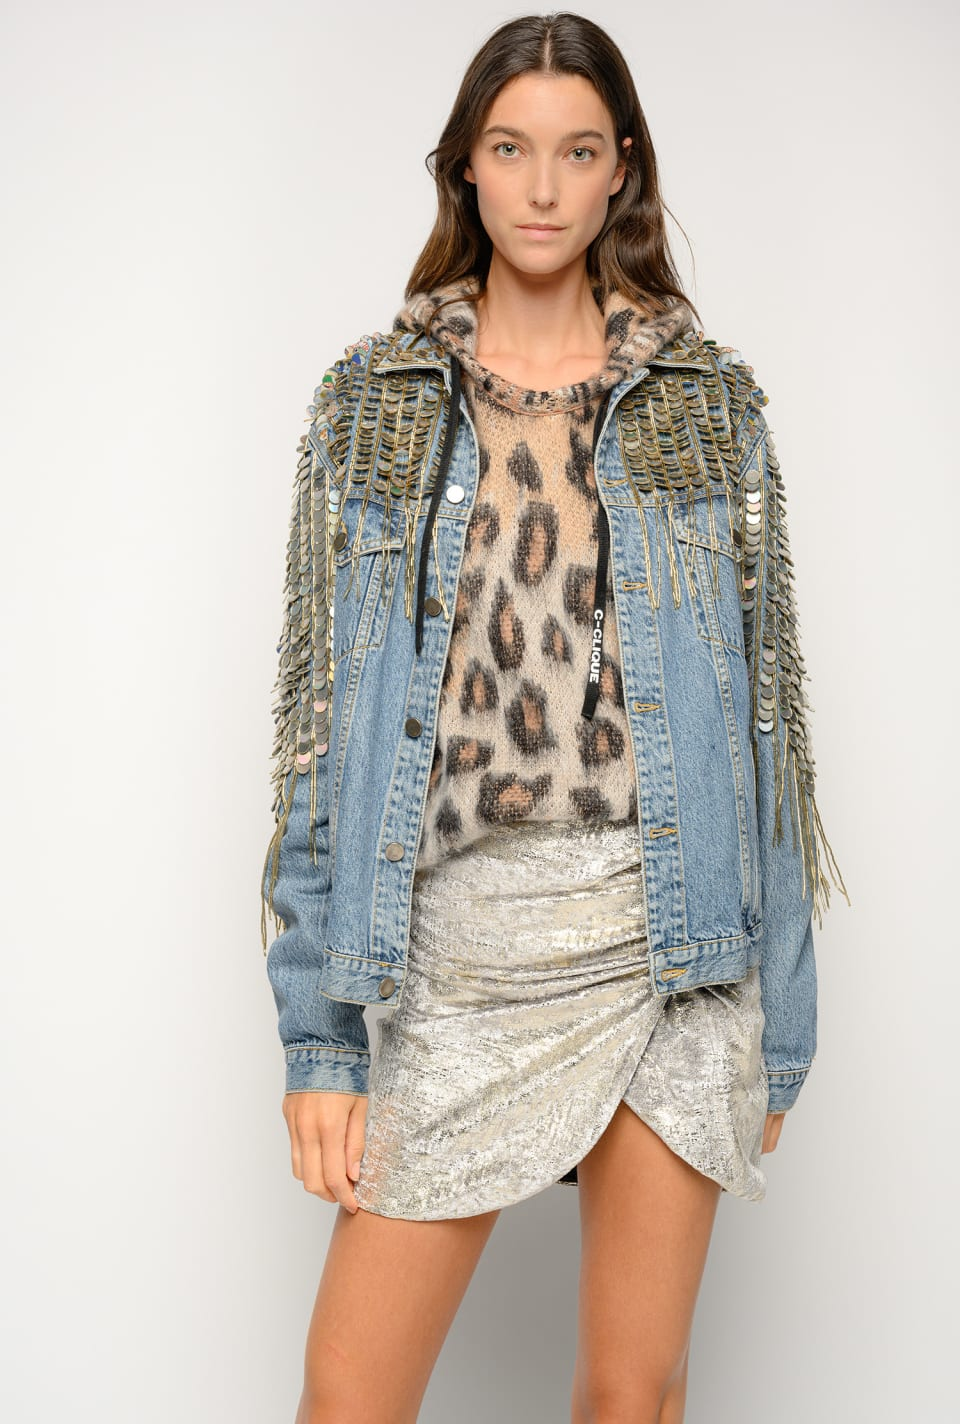 Denimjacke Re-Glam - Pinko